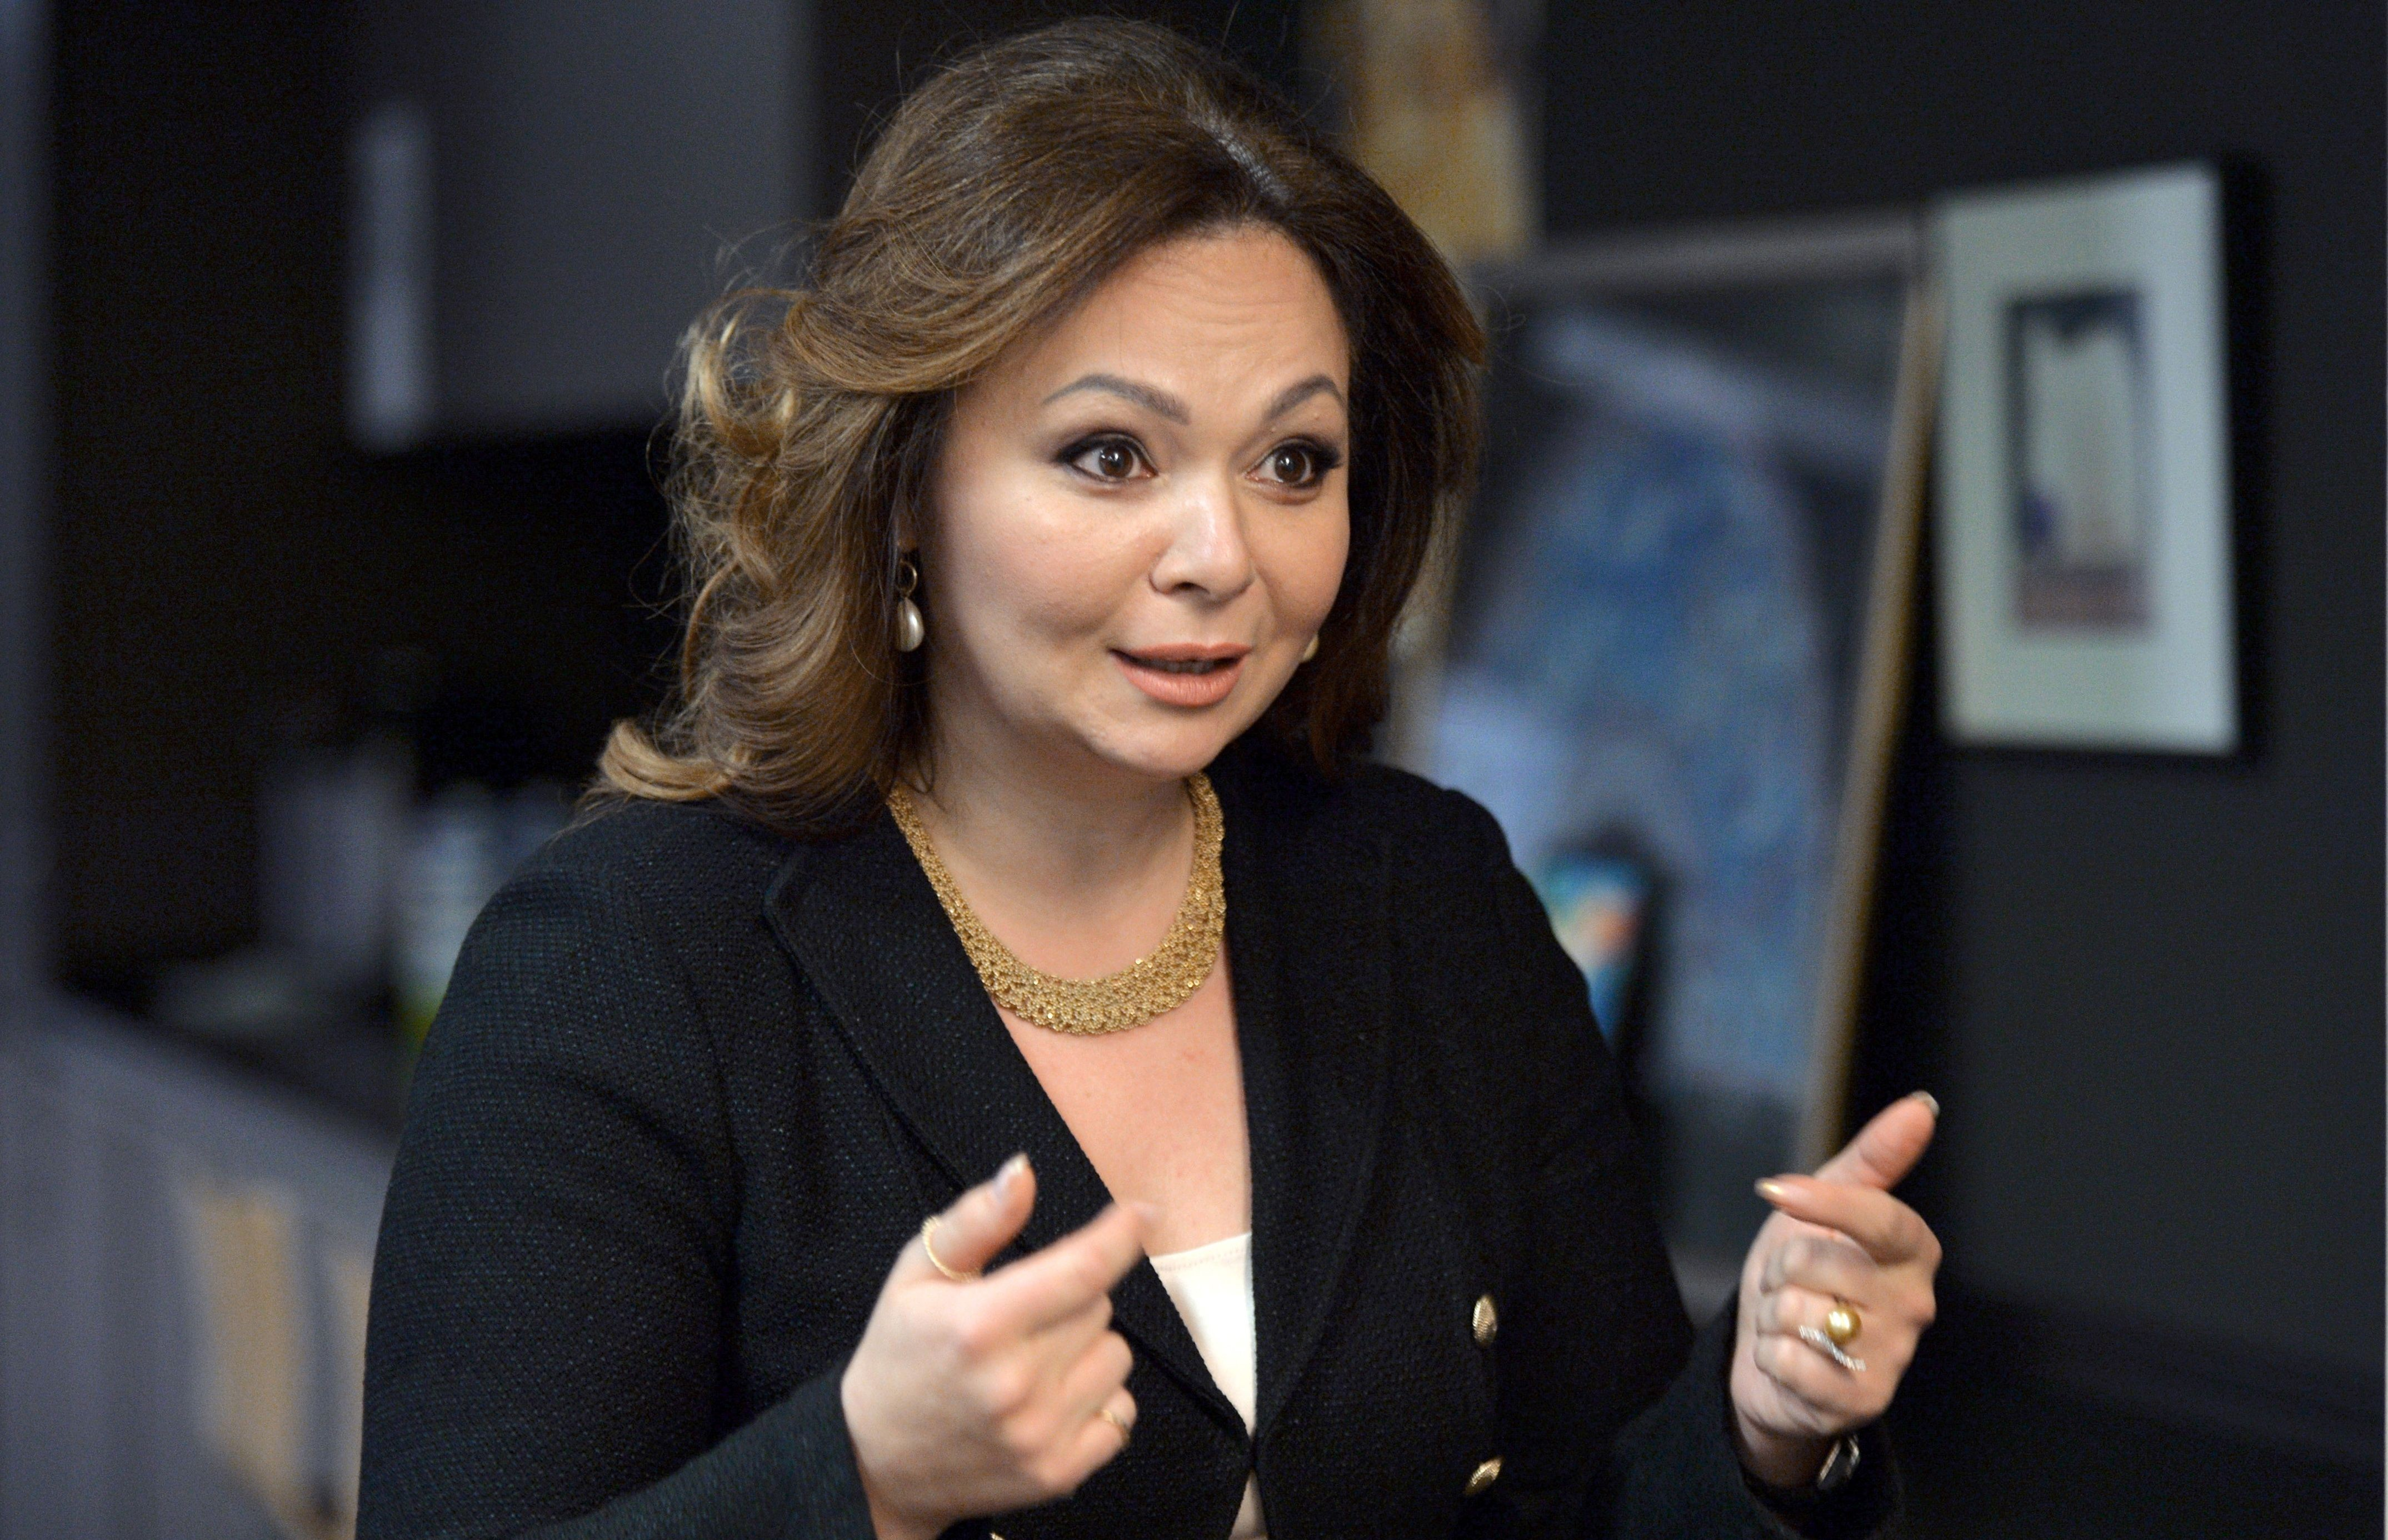 Russian lawyer Natalia Veselnitskaya in Moscow on Nov. 8, 2016. (YURY MARTYANOV/AFP/Getty Images)